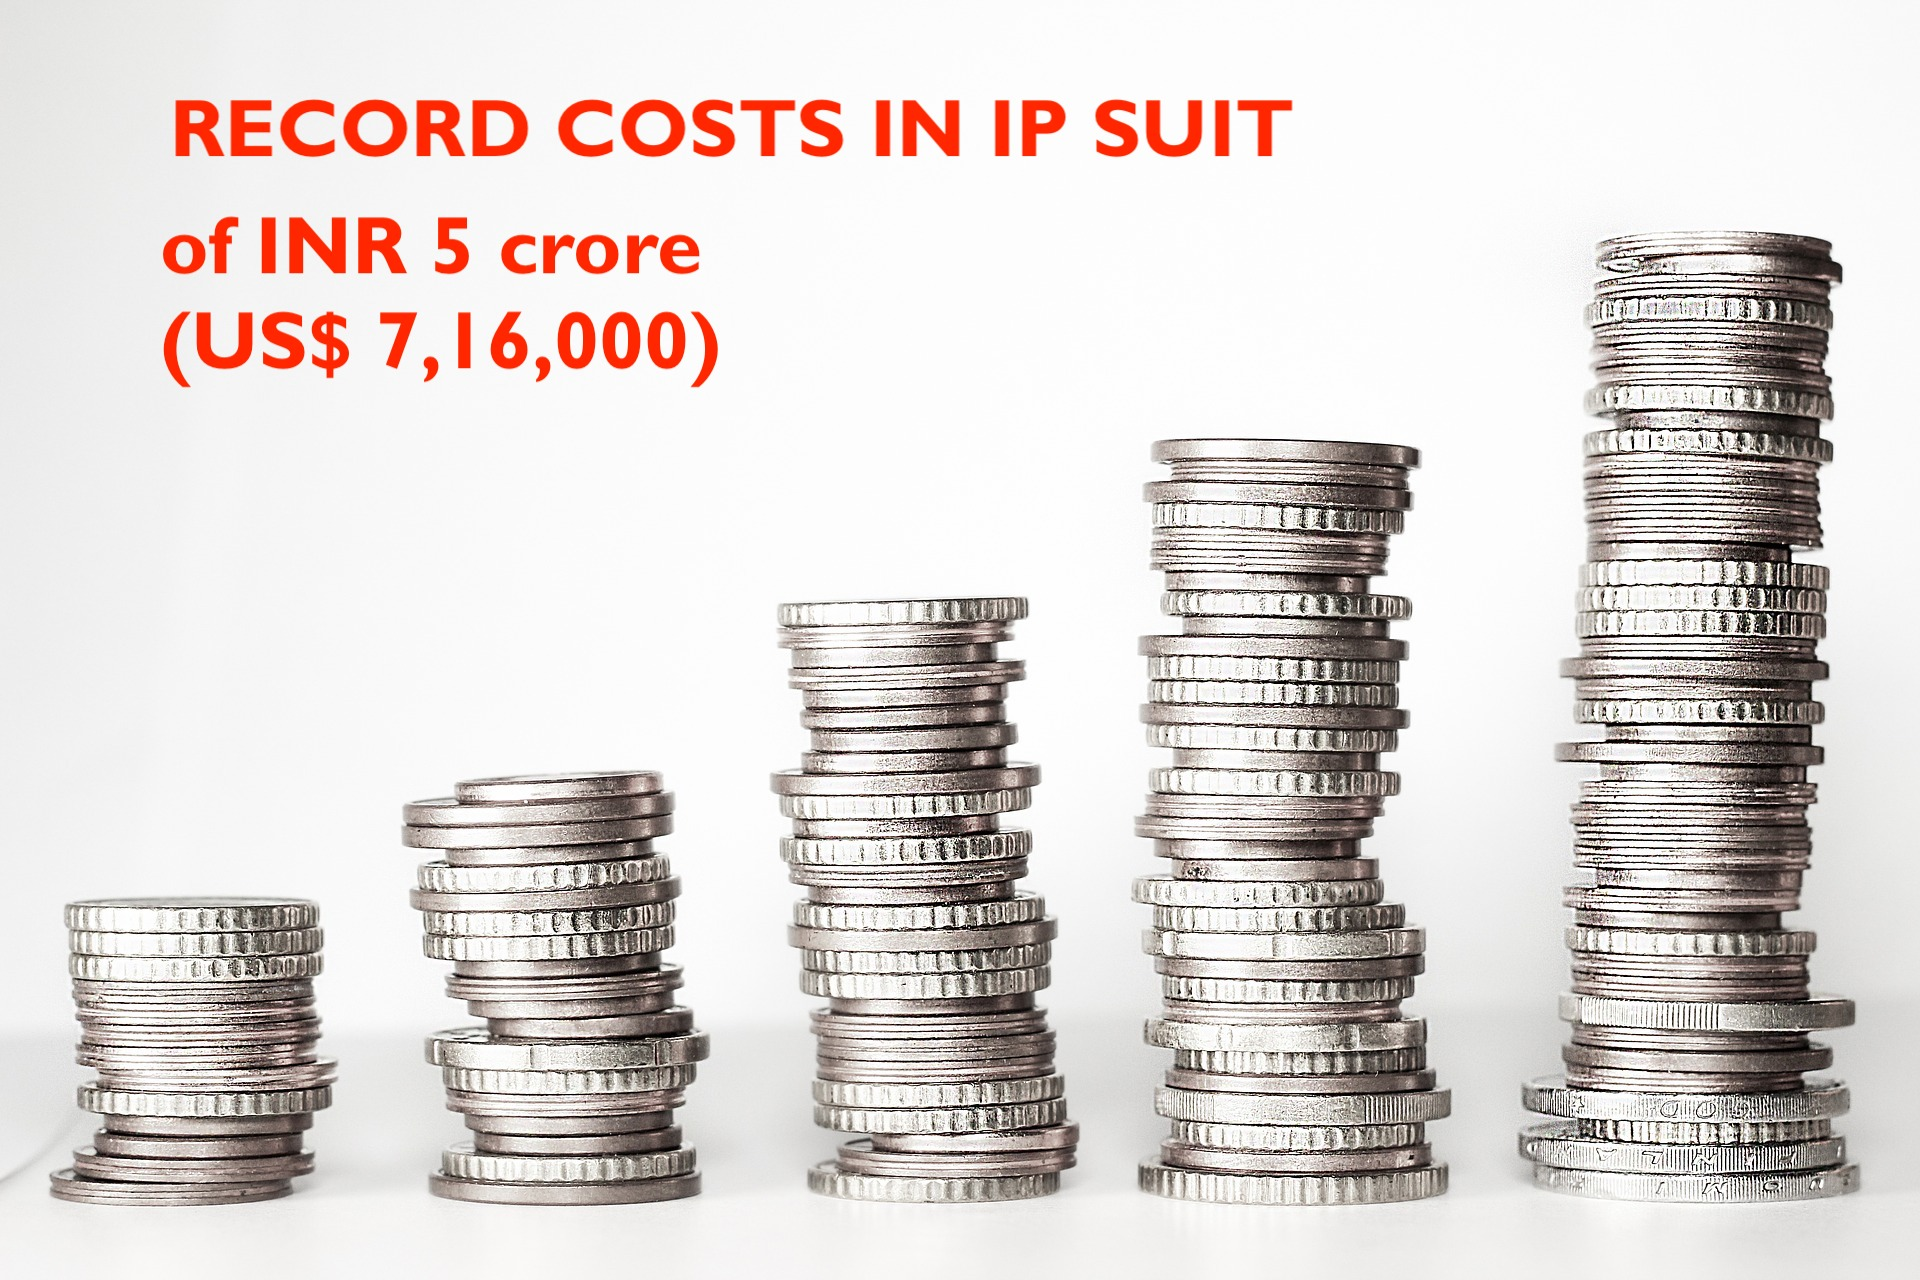 Record Costs of INR 50 million (US$ 7,16,000) In IP Suit